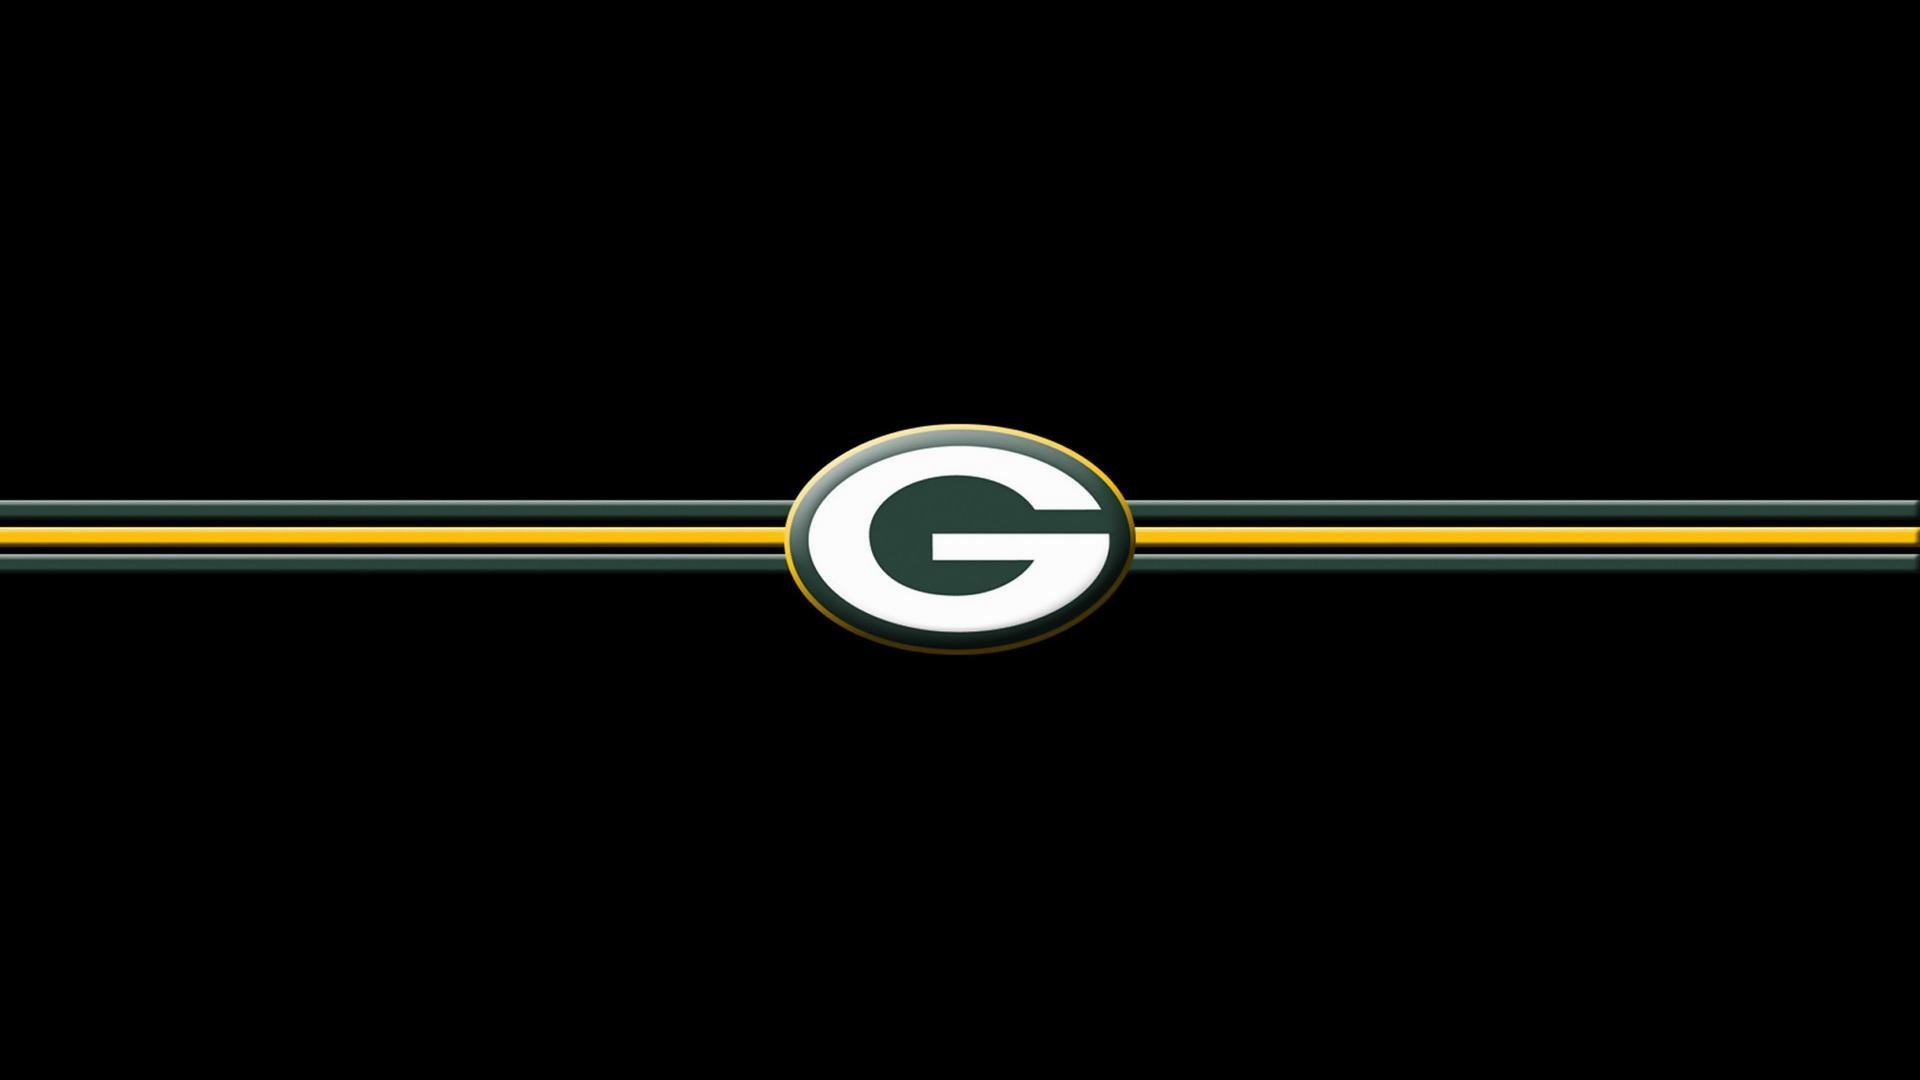 Green Bay Packers Iphone X Wallpaper Green Bay Packers Wallpaper Graphic 68 Images